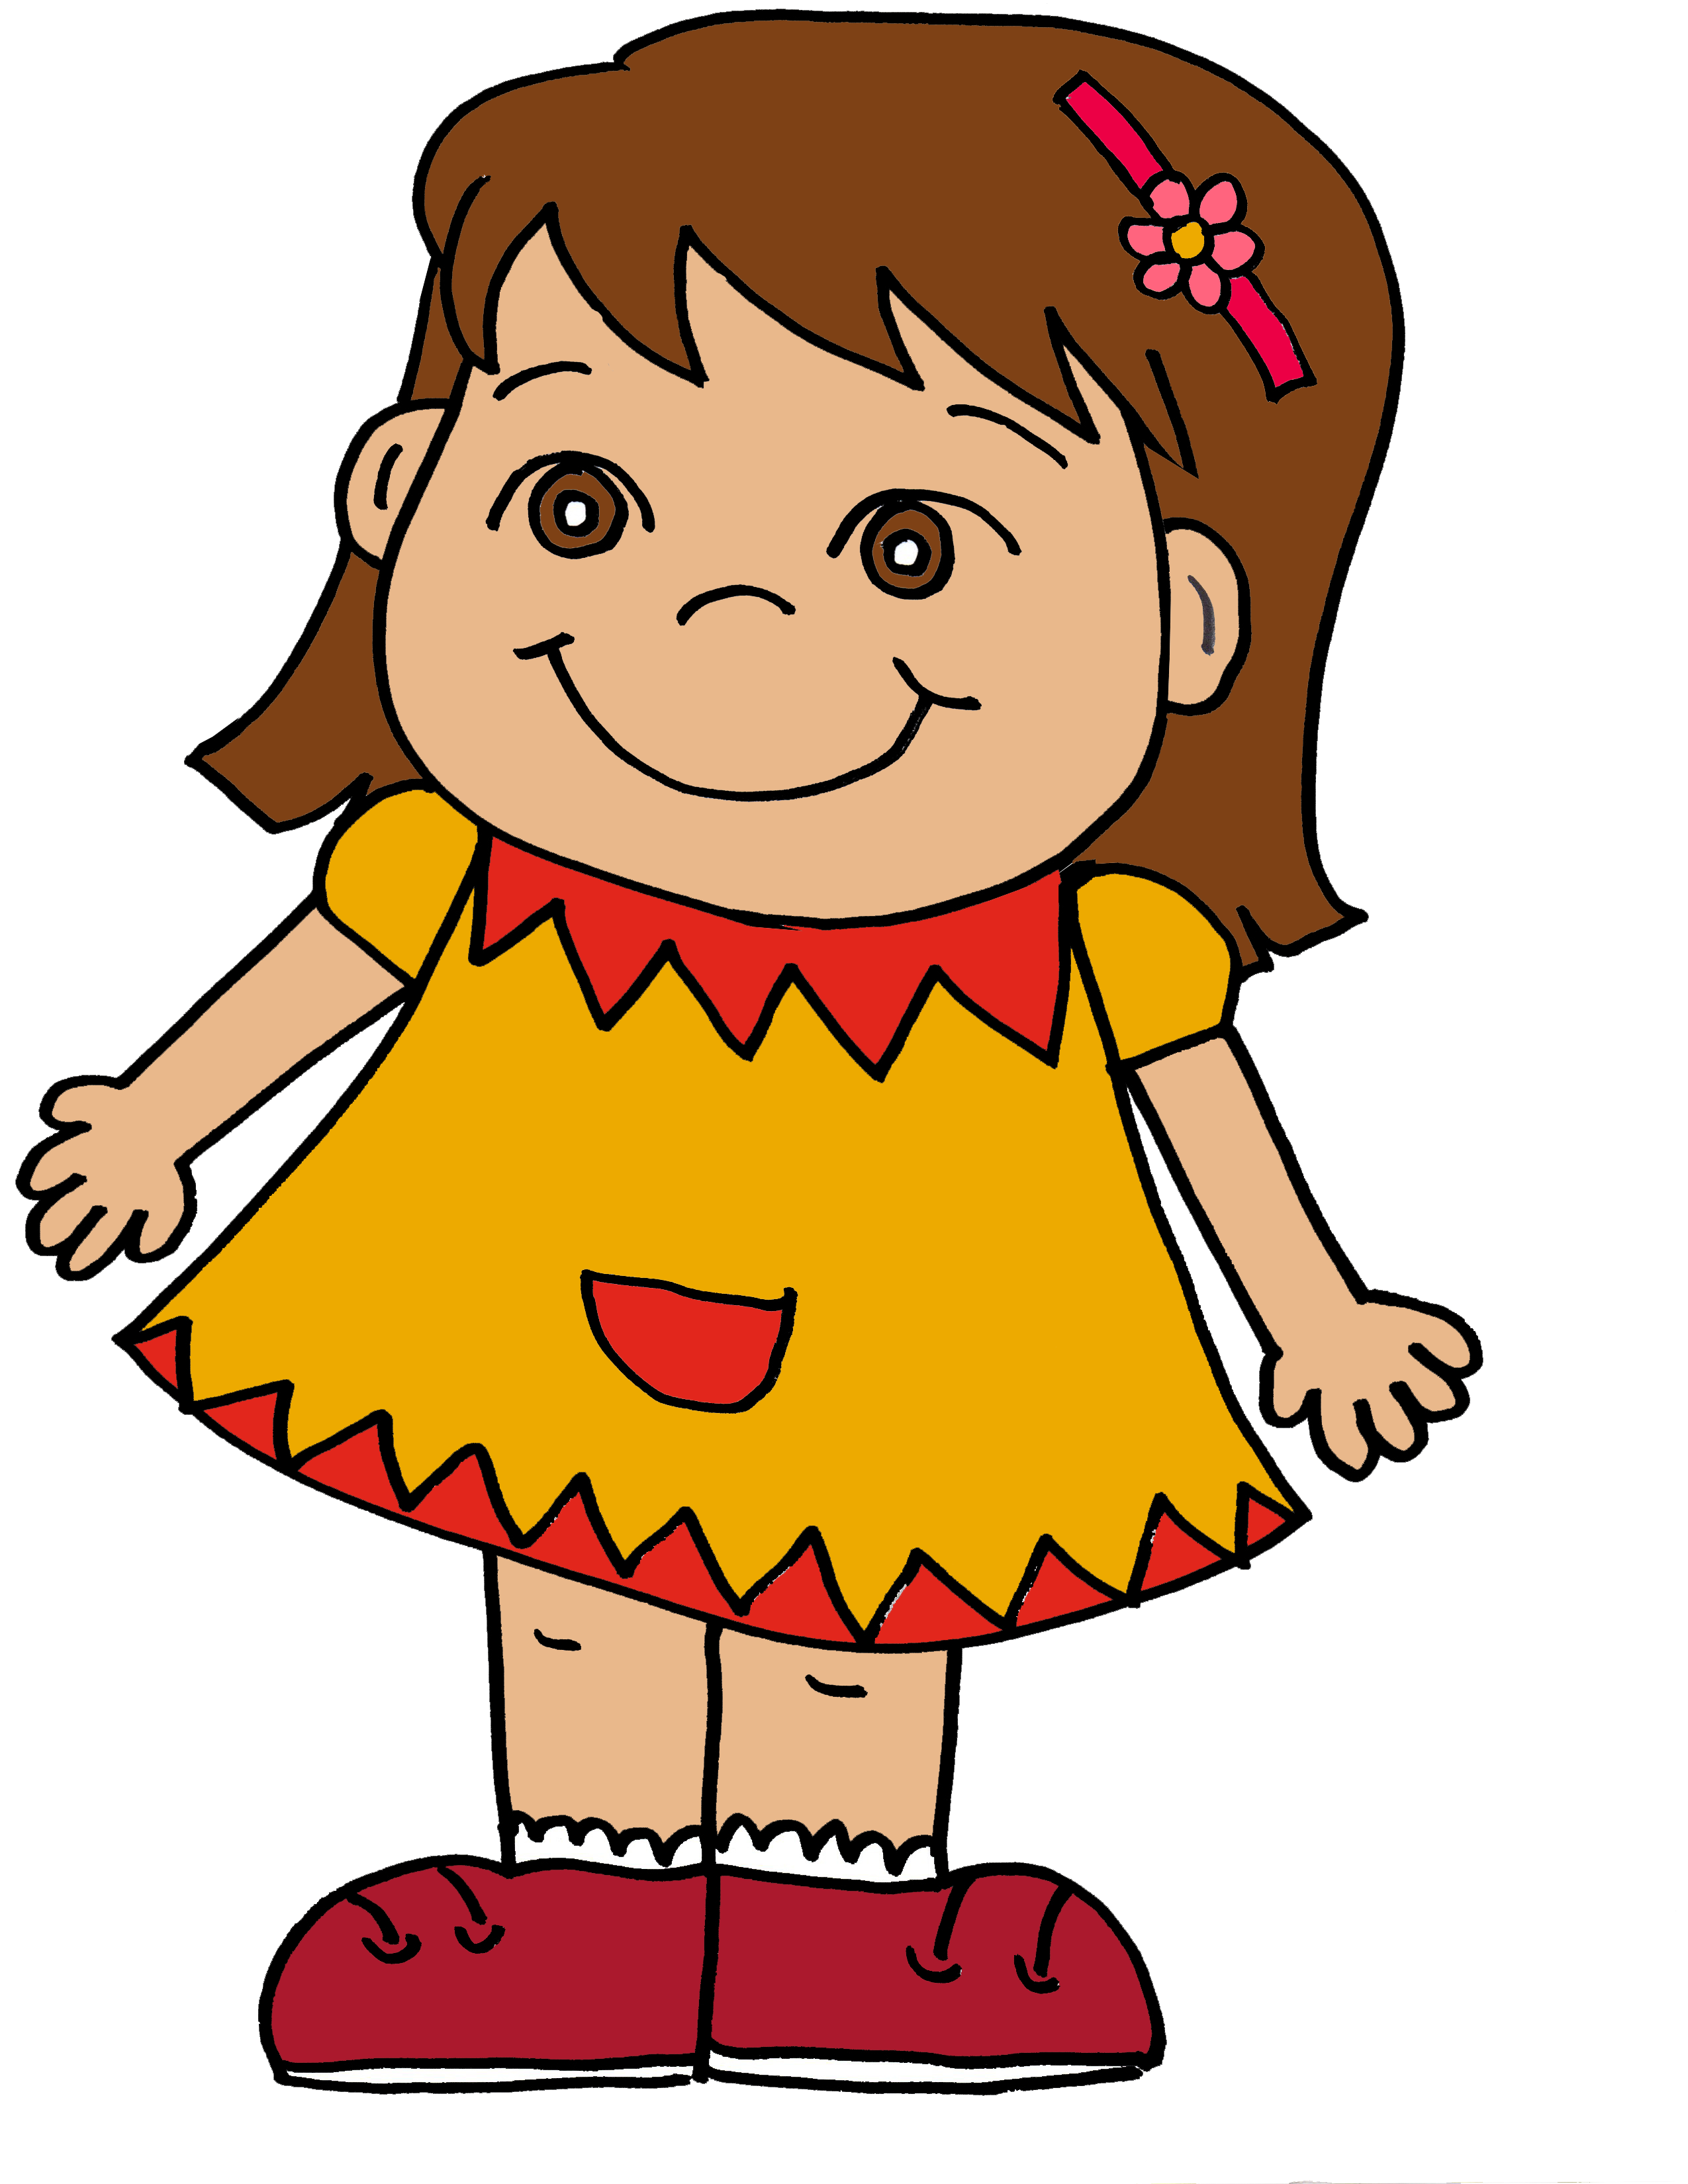 Girl image clipart graphic freeuse stock Free Girl Cliparts, Download Free Clip Art, Free Clip Art on Clipart ... graphic freeuse stock